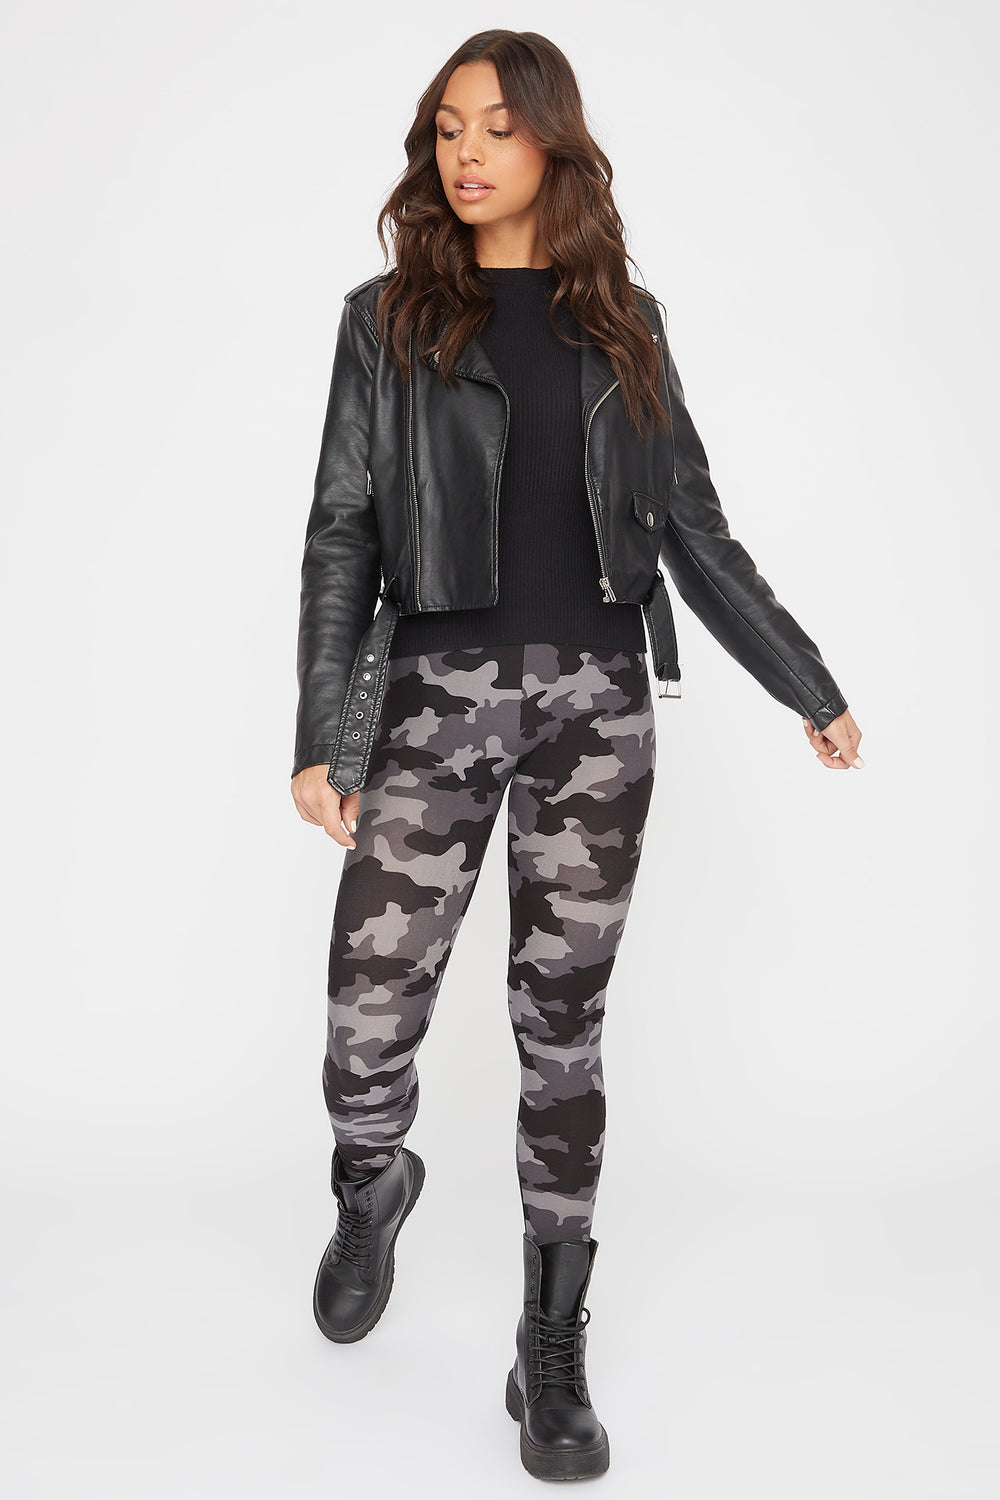 Camo Printed Leggings Charcoal